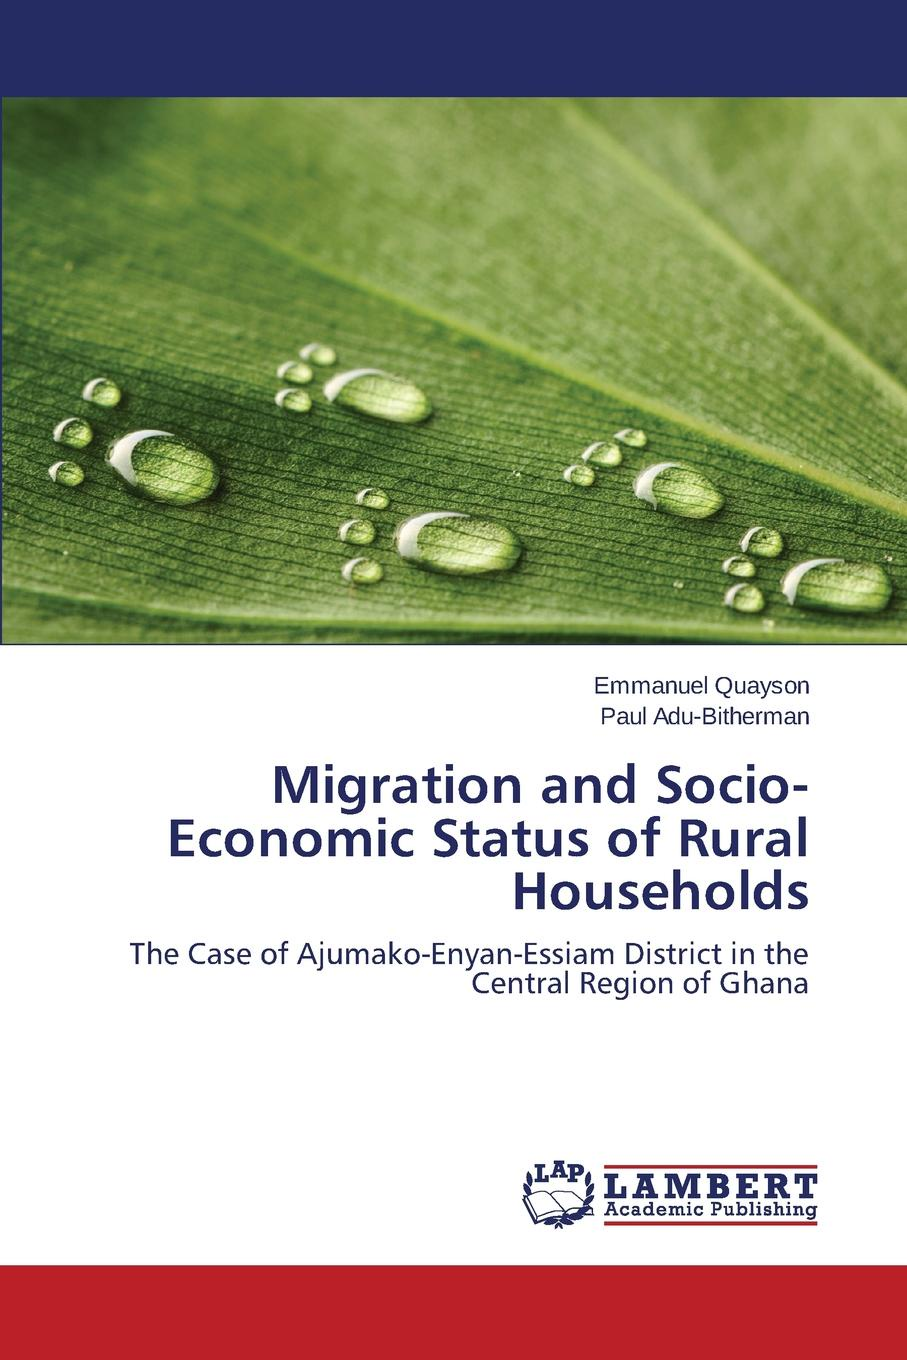 Quayson Emmanuel, Adu-Bitherman Paul Migration and Socio-Economic Status of Rural Households thoti mallikarjuna rural development programmes in chitoor district of andhra pradesh